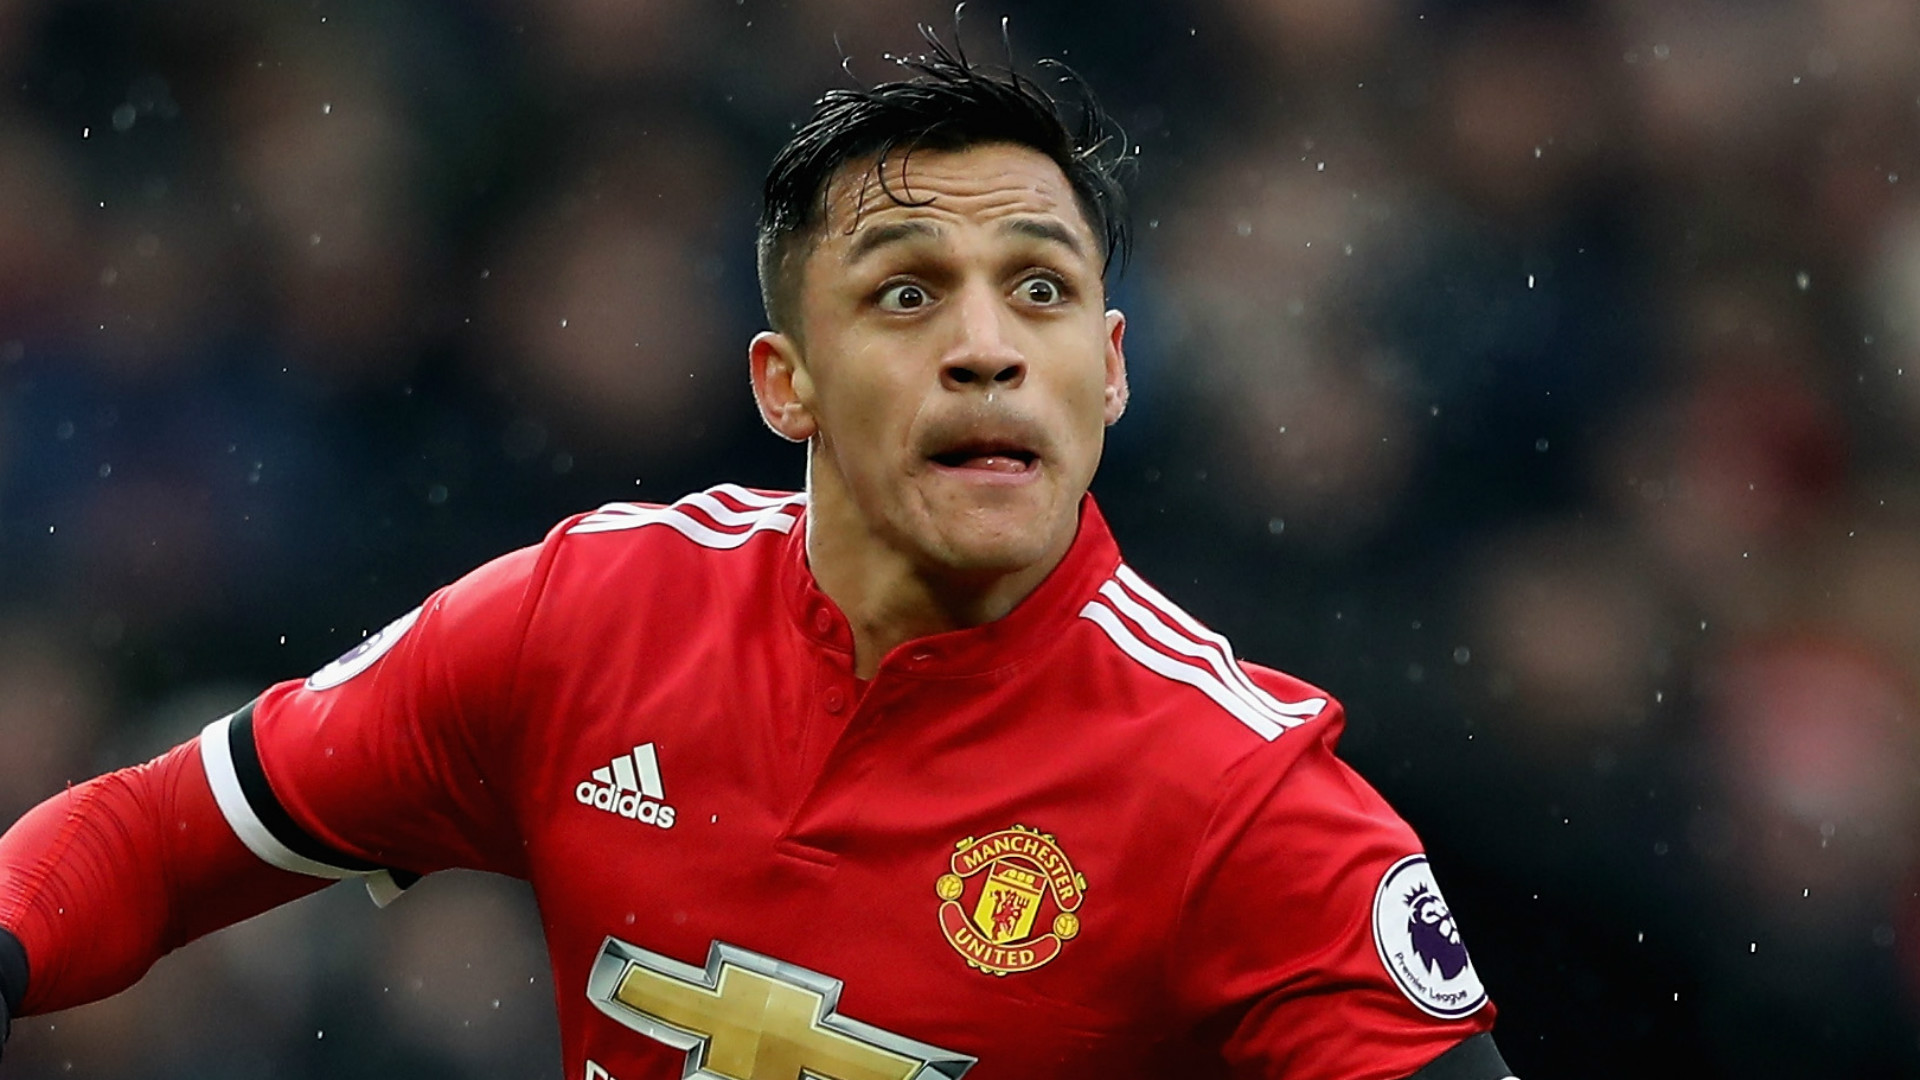 What is Alexis Sanchez's net worth and how much does the